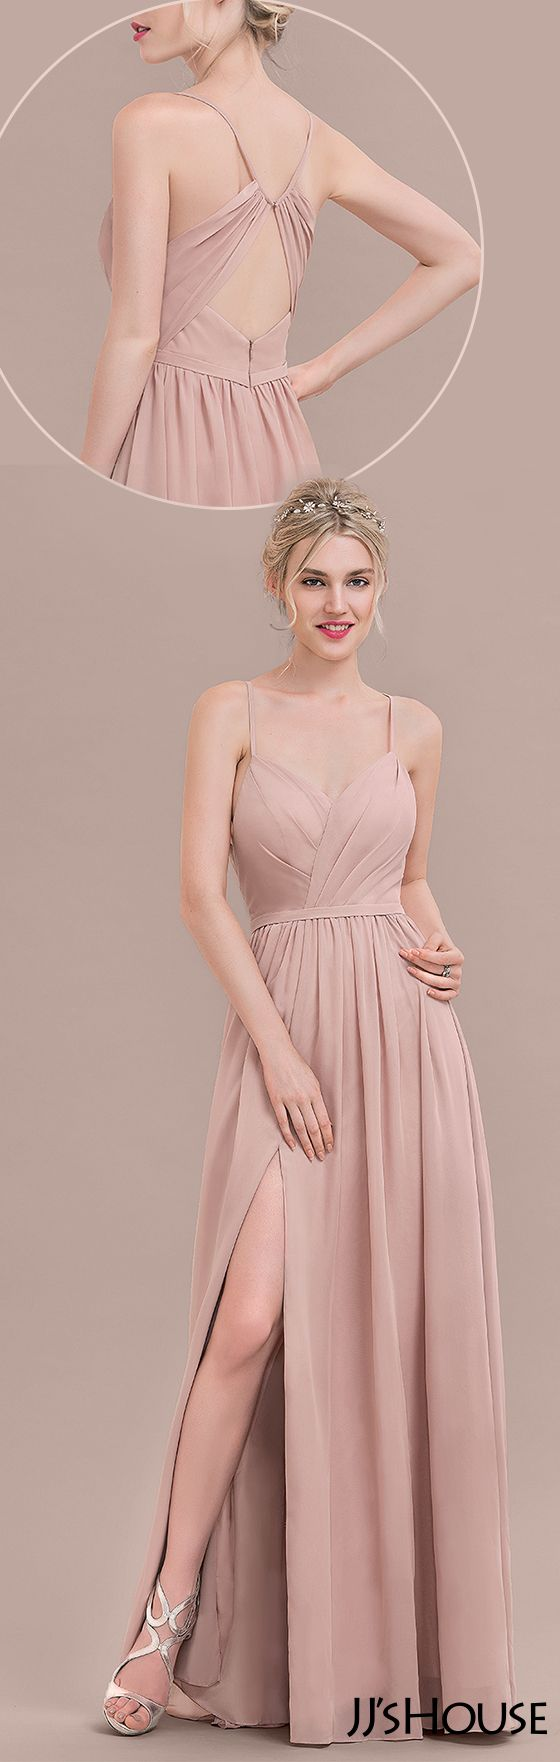 JJsHouse #Bridesmaid | heart | Pinterest | Vestido largo, Viejitos y ...